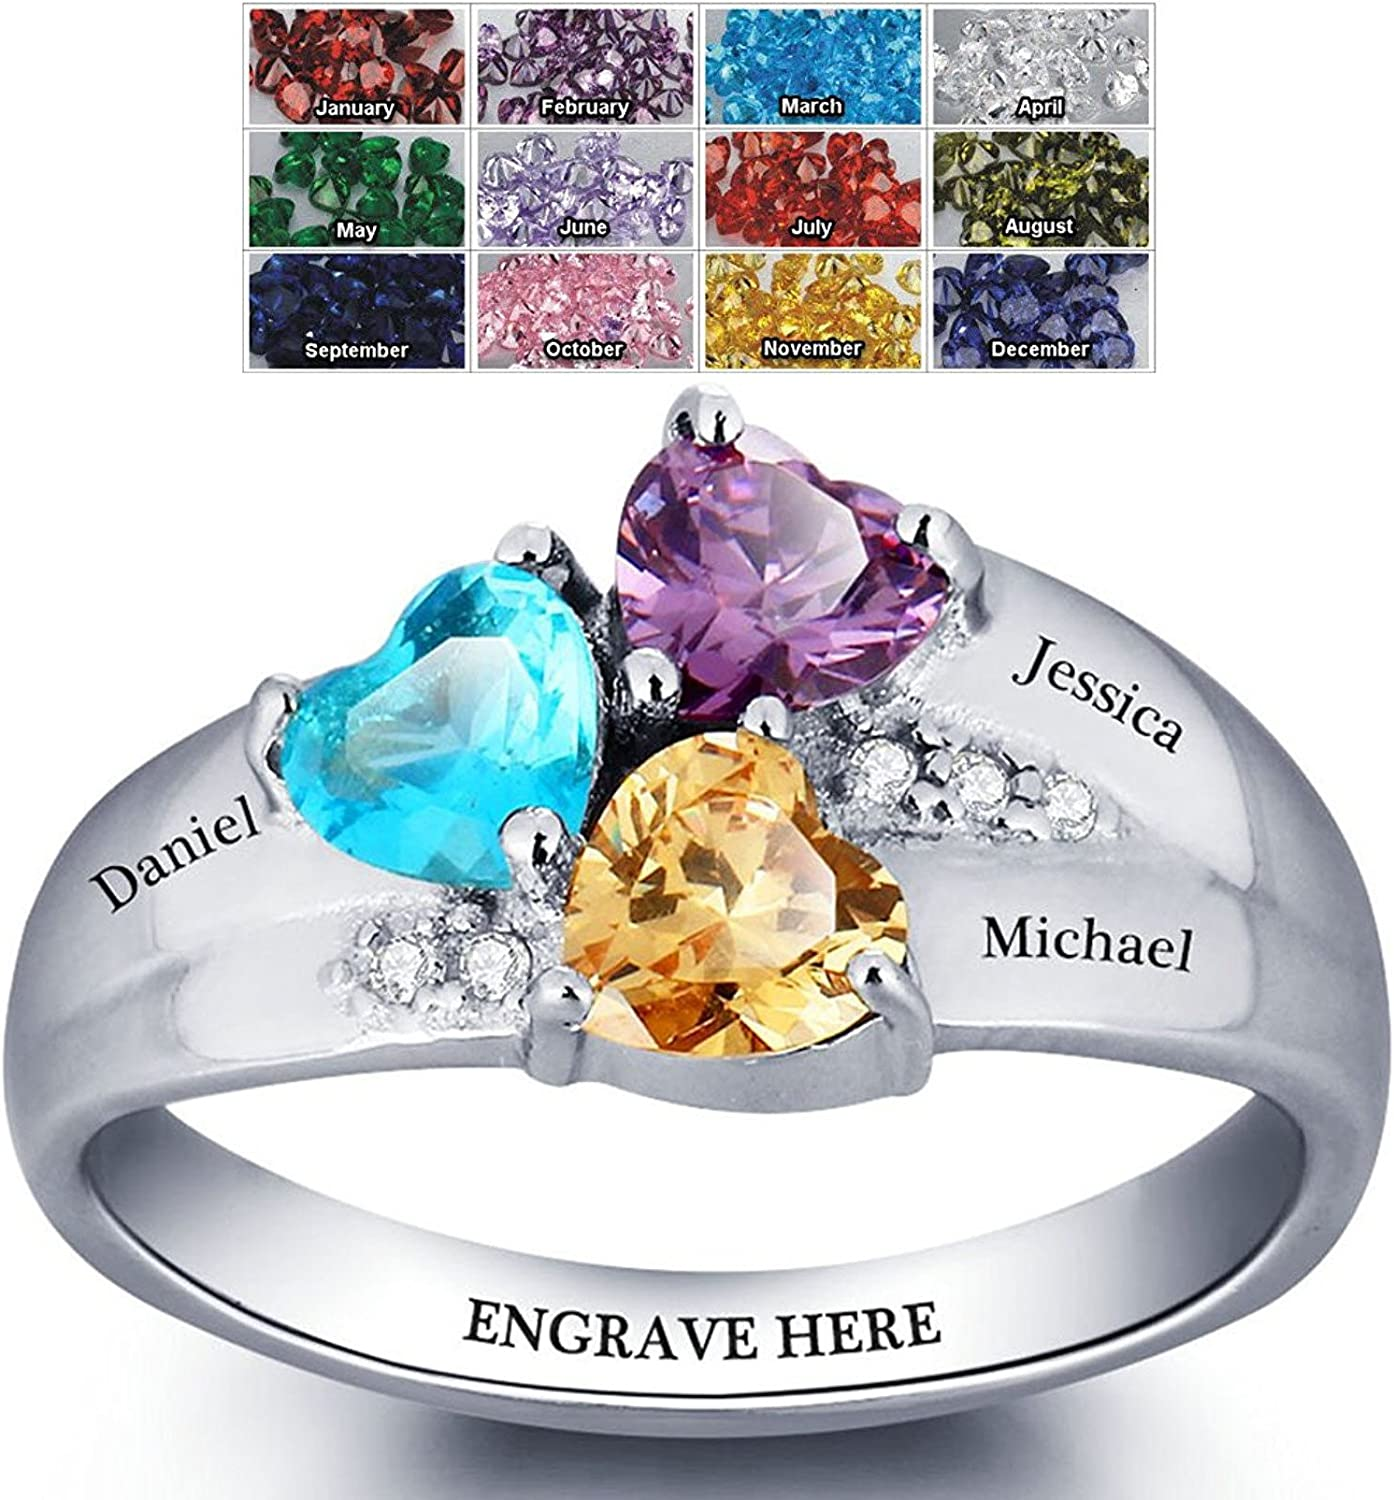 Mothers Ring 2 Birthstone Mothers Ring 2 Stone 2 Name Engraved Sterling Silver Family Ring 2 Stone Birthstone Ring for Mom from Kids